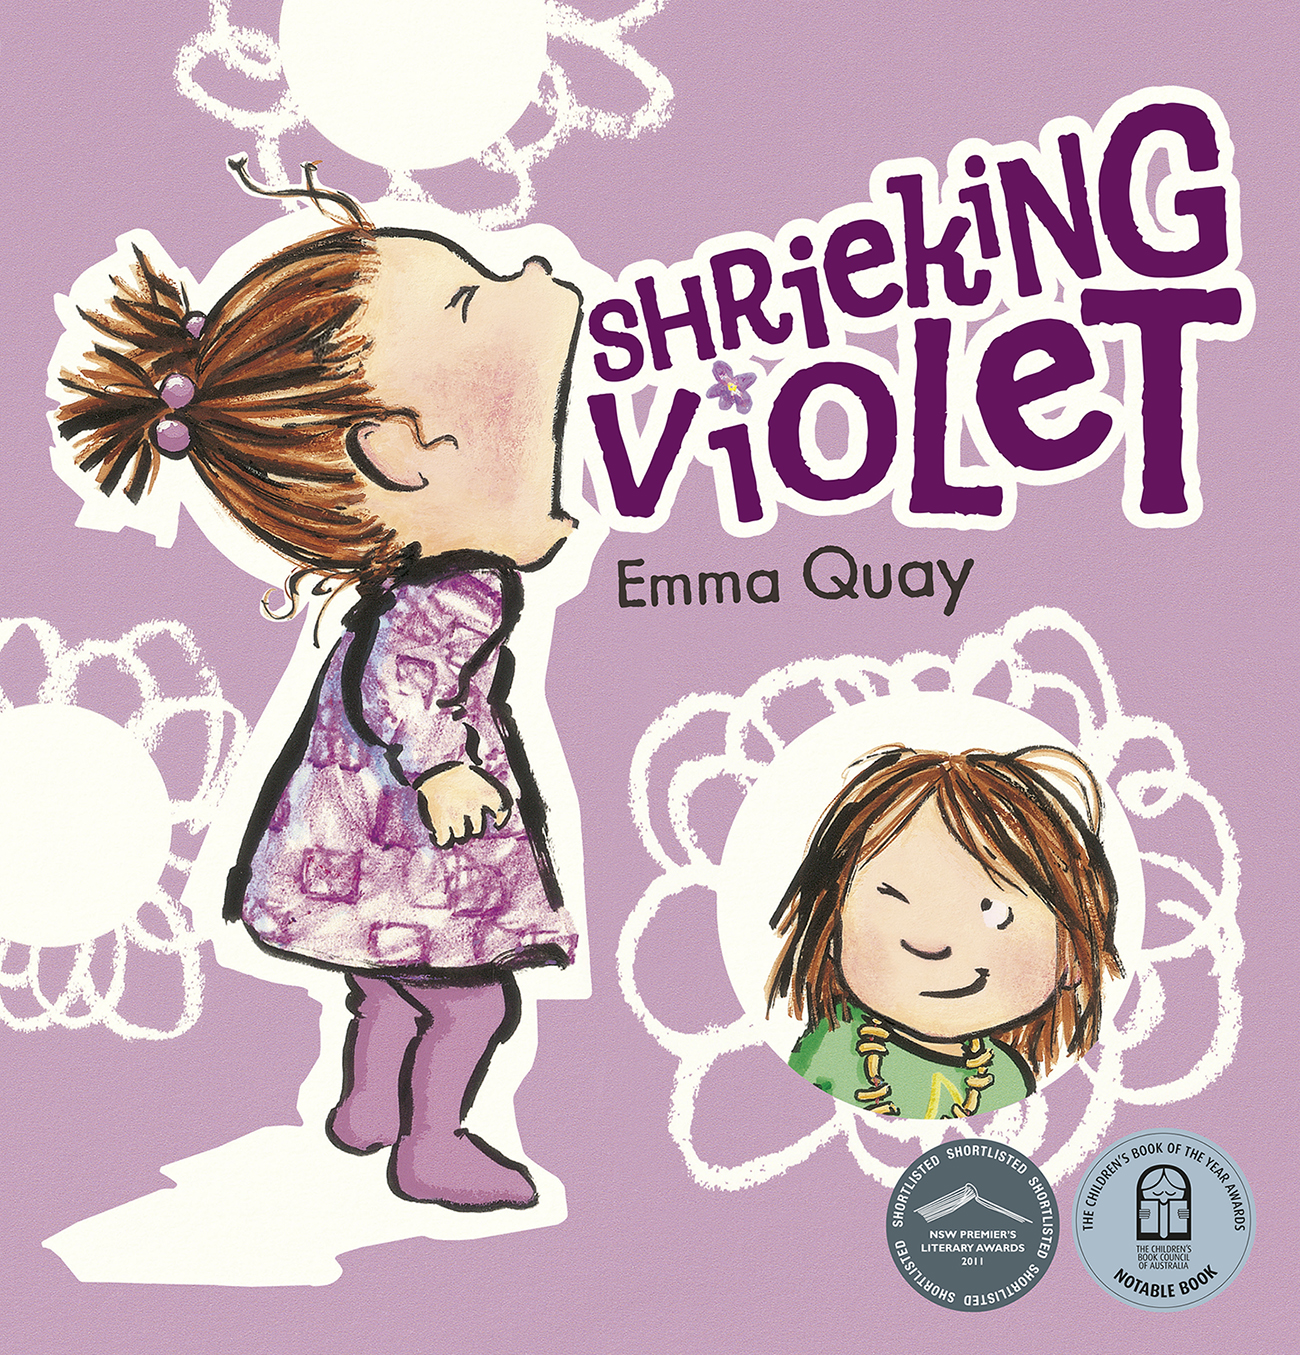 SHRIEKING VIOLET by Emma Quay (ABC Books) - www.emmaquay.com